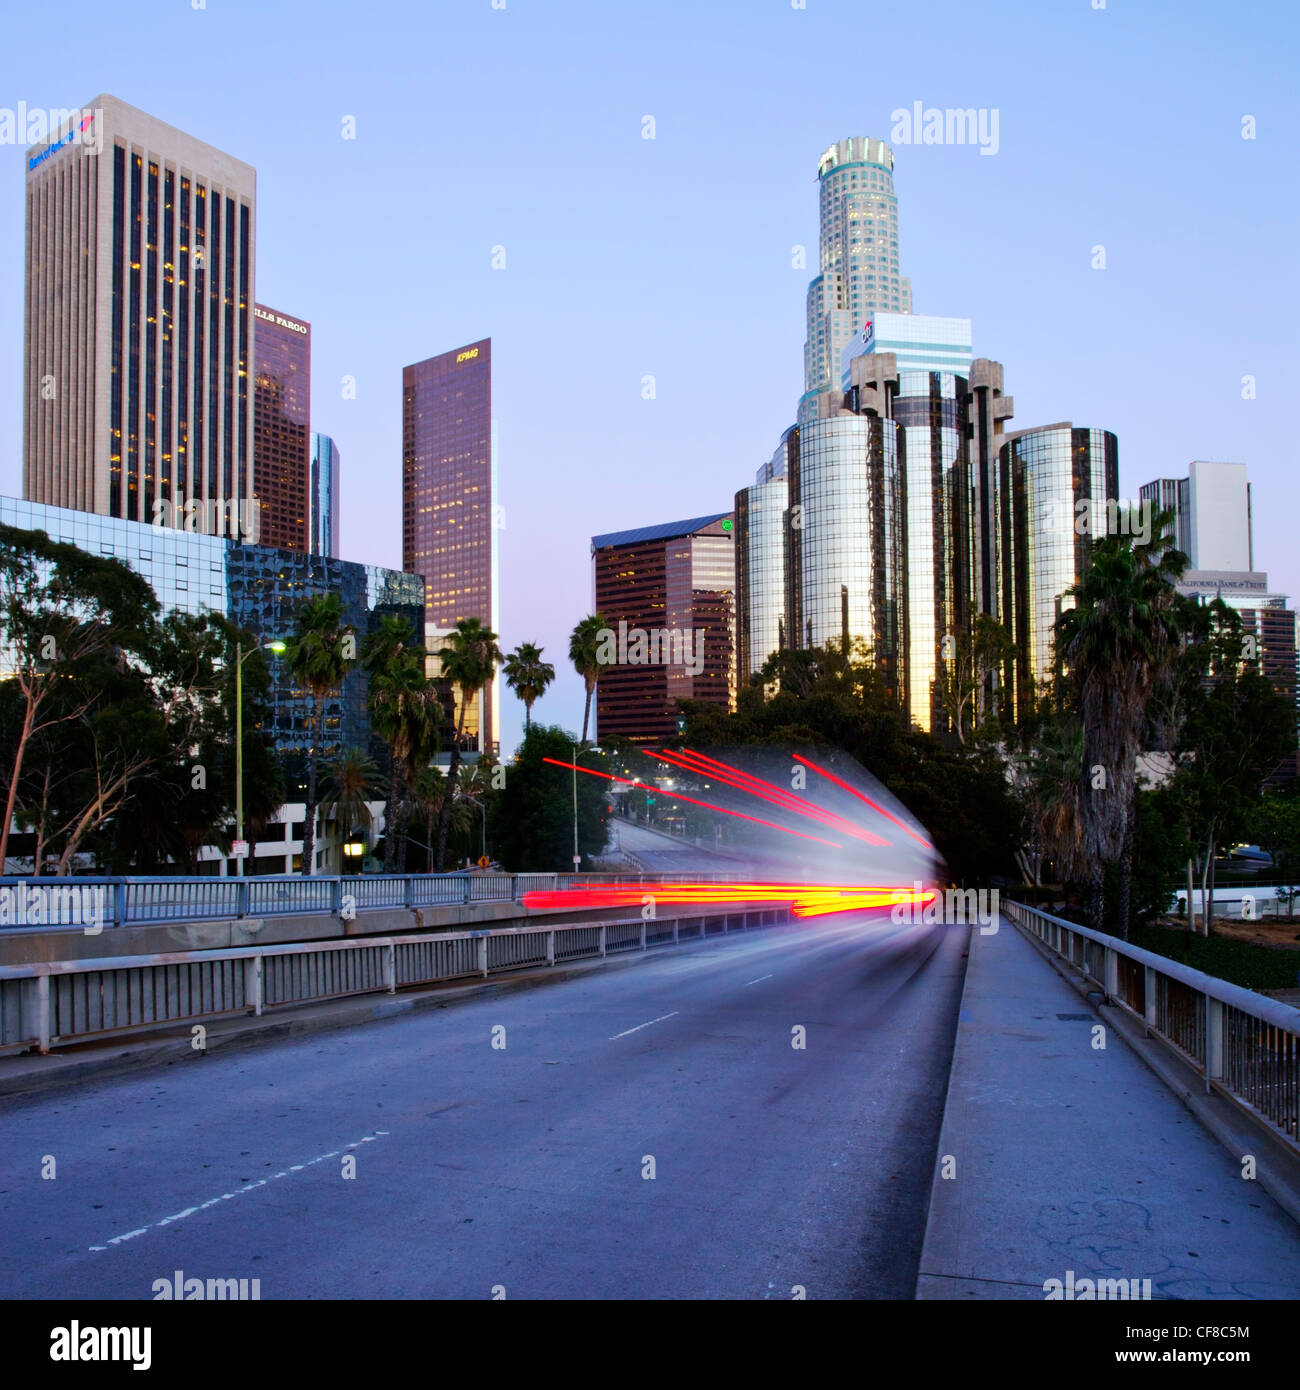 The 110 Harbour Freeway and Downtown Los Angeles skyline, California, United States of America - Stock Image